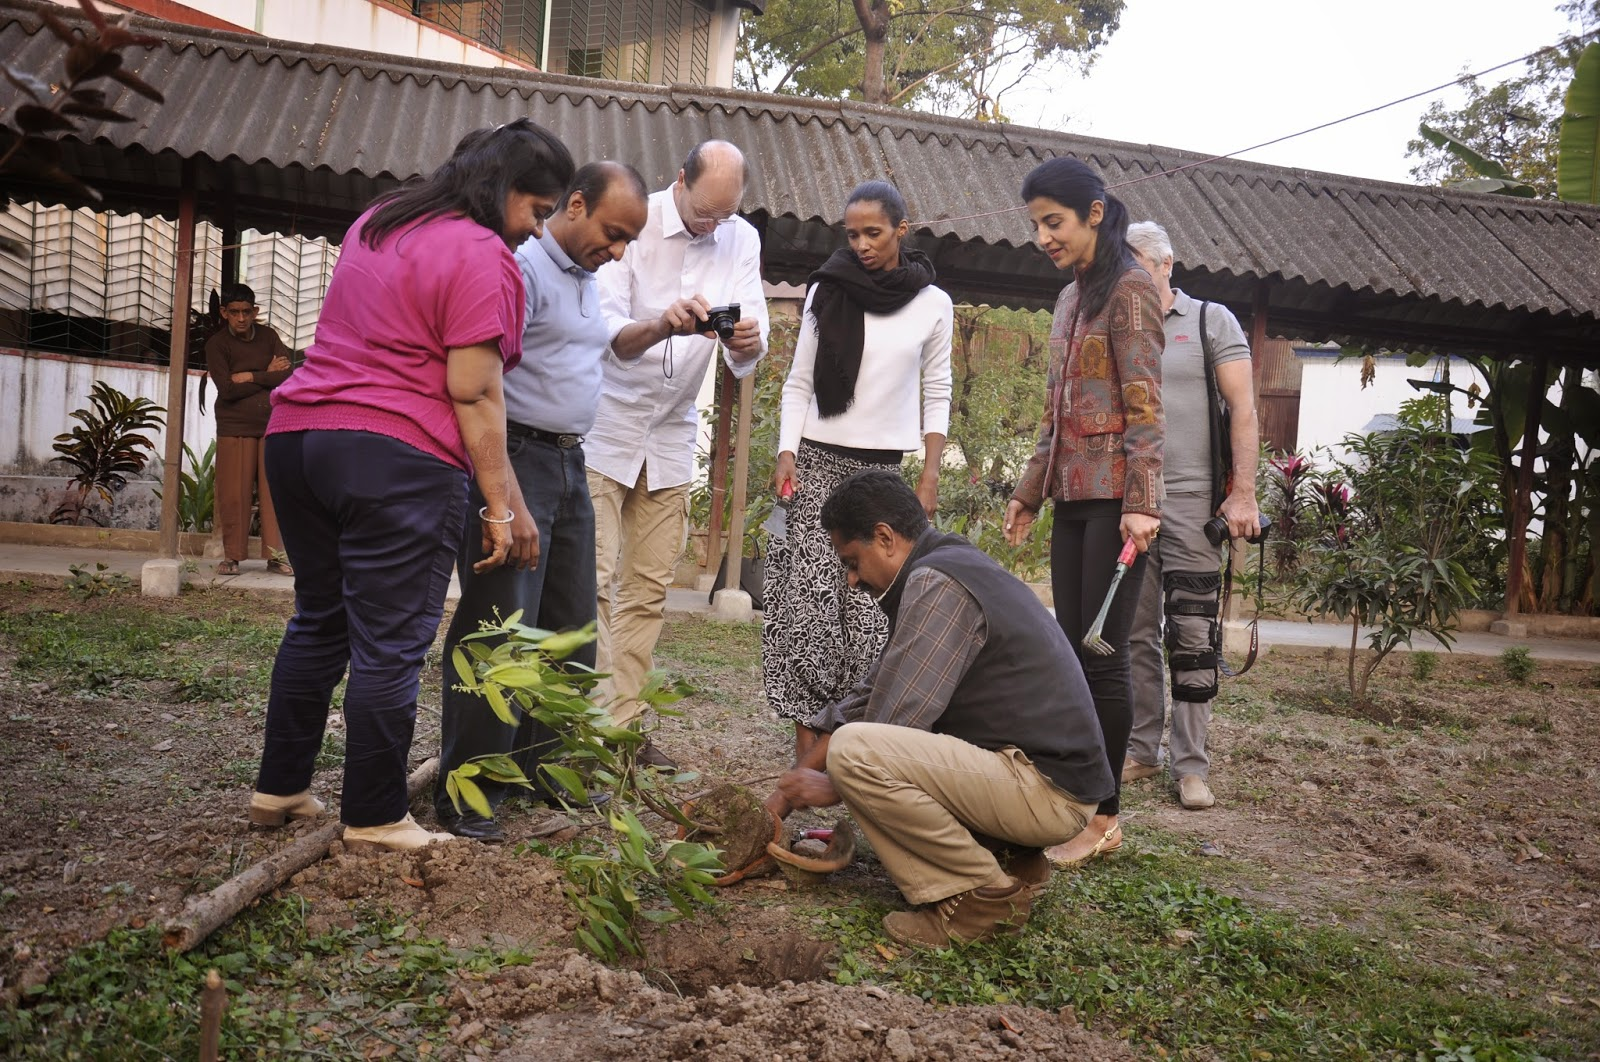 Tej Patta is used in Indian cooking. Philipp and Sara Schoeller, Walter and Delphine Raizner planting a bay leaf trees